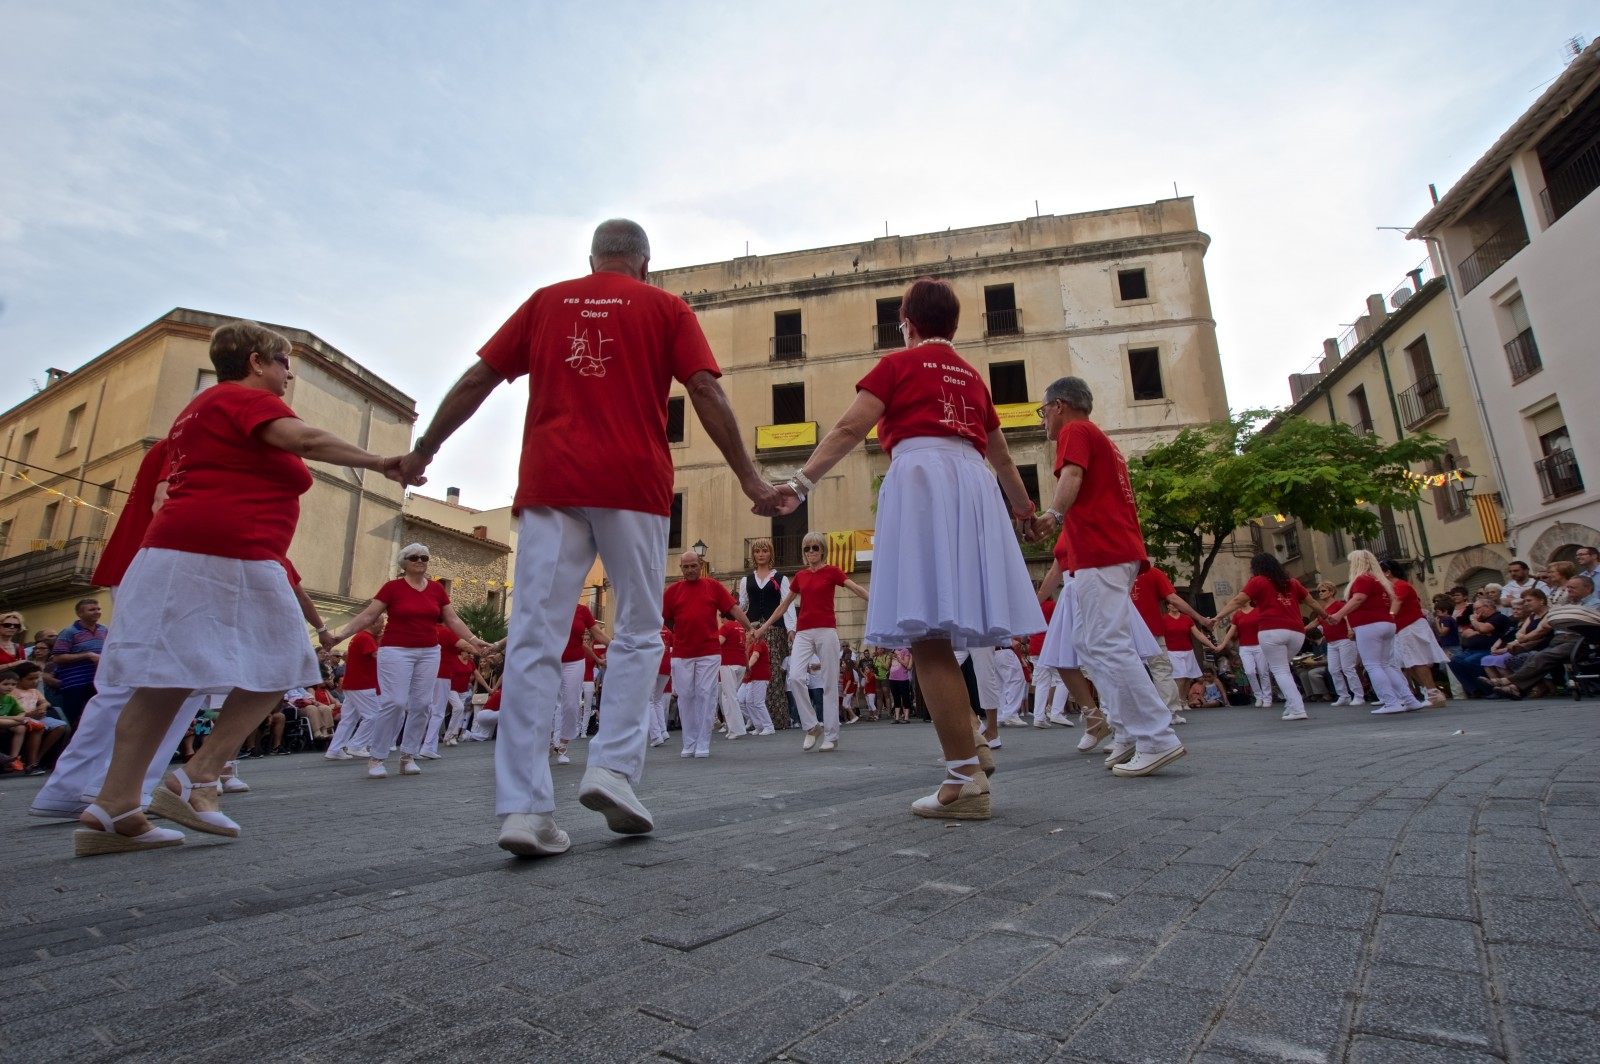 Sardana dance. Photo: Jaume Morera Barreda